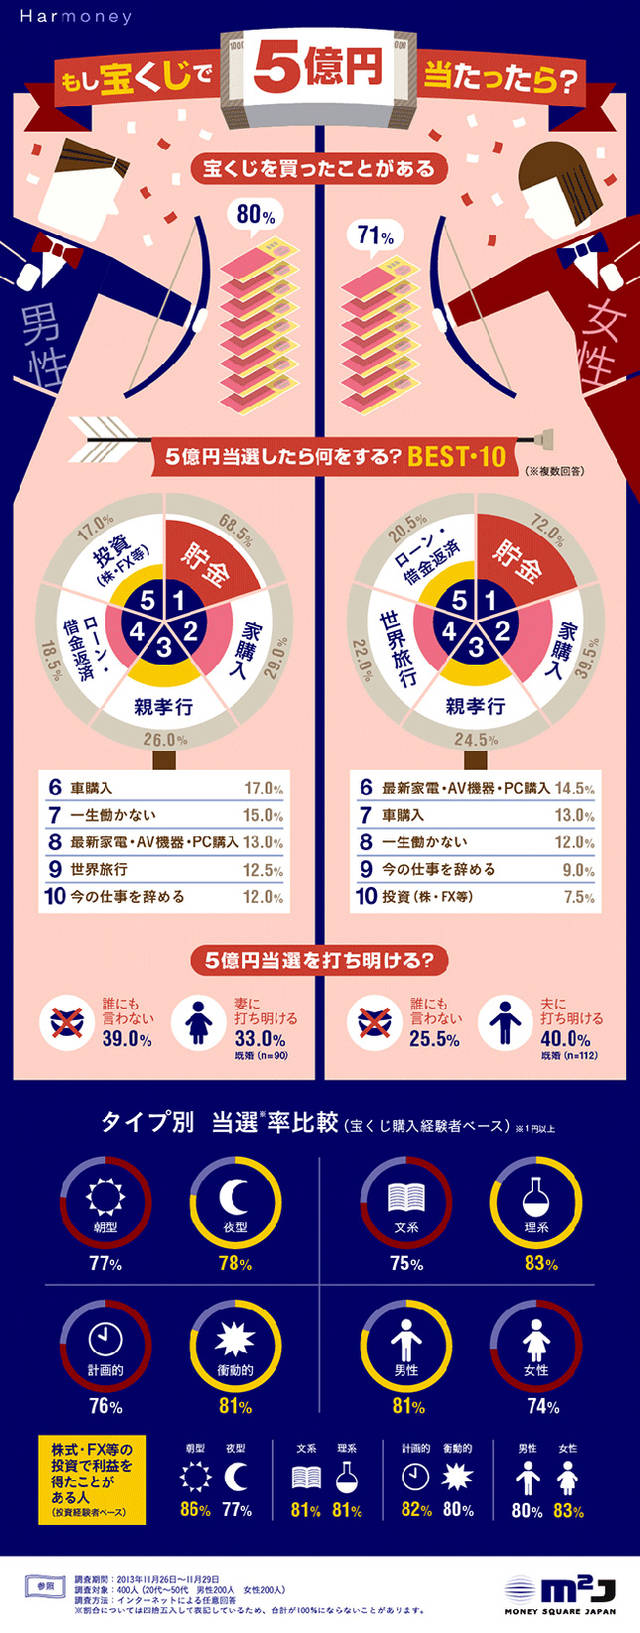 Infographic123 lottery